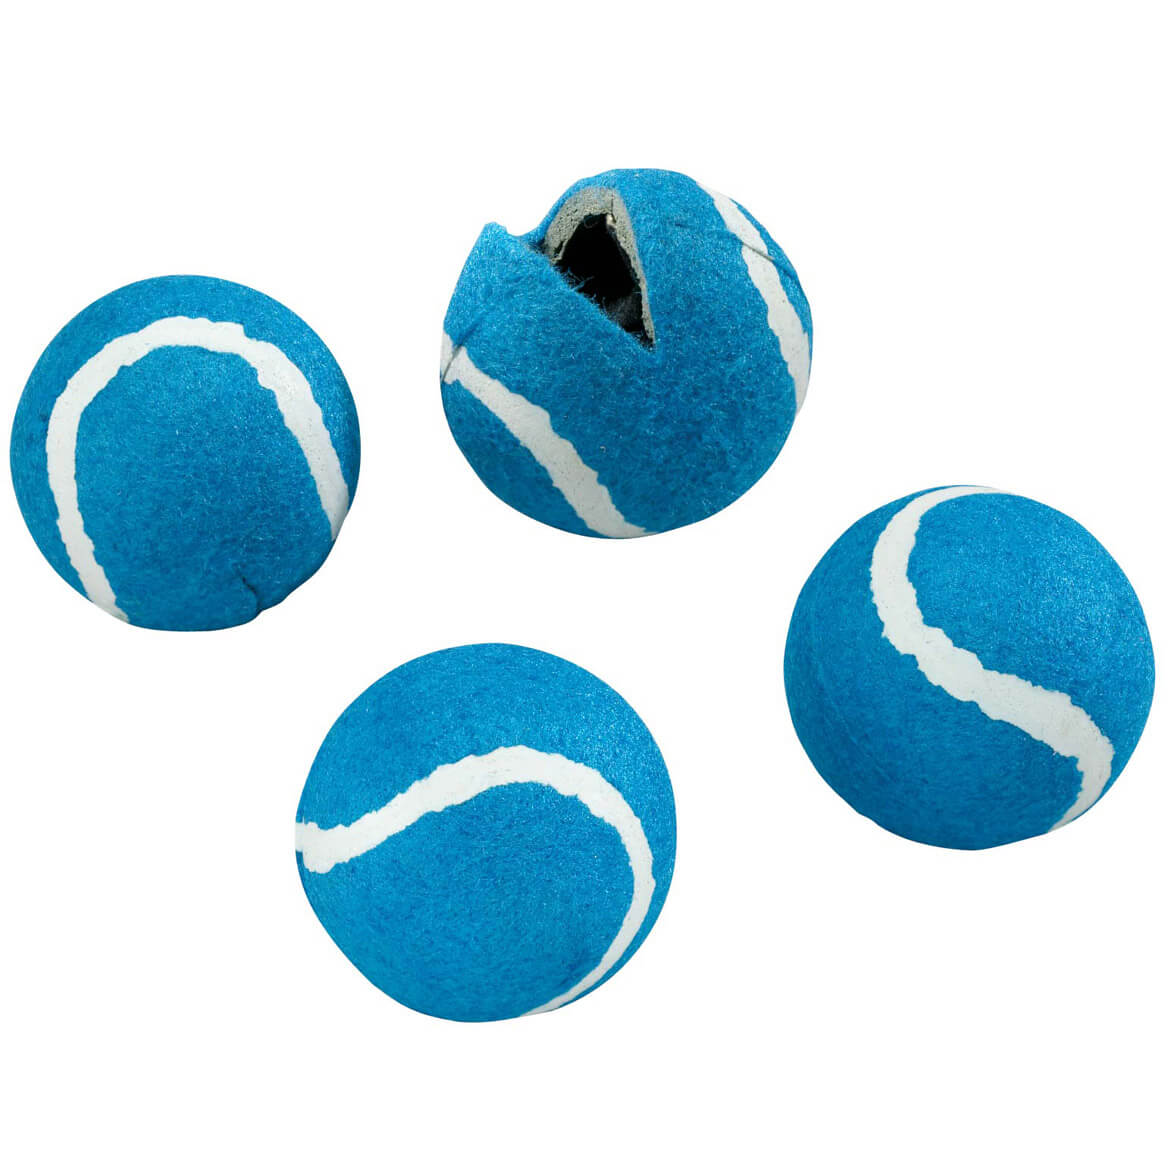 Walker Tennis Balls Set of 4